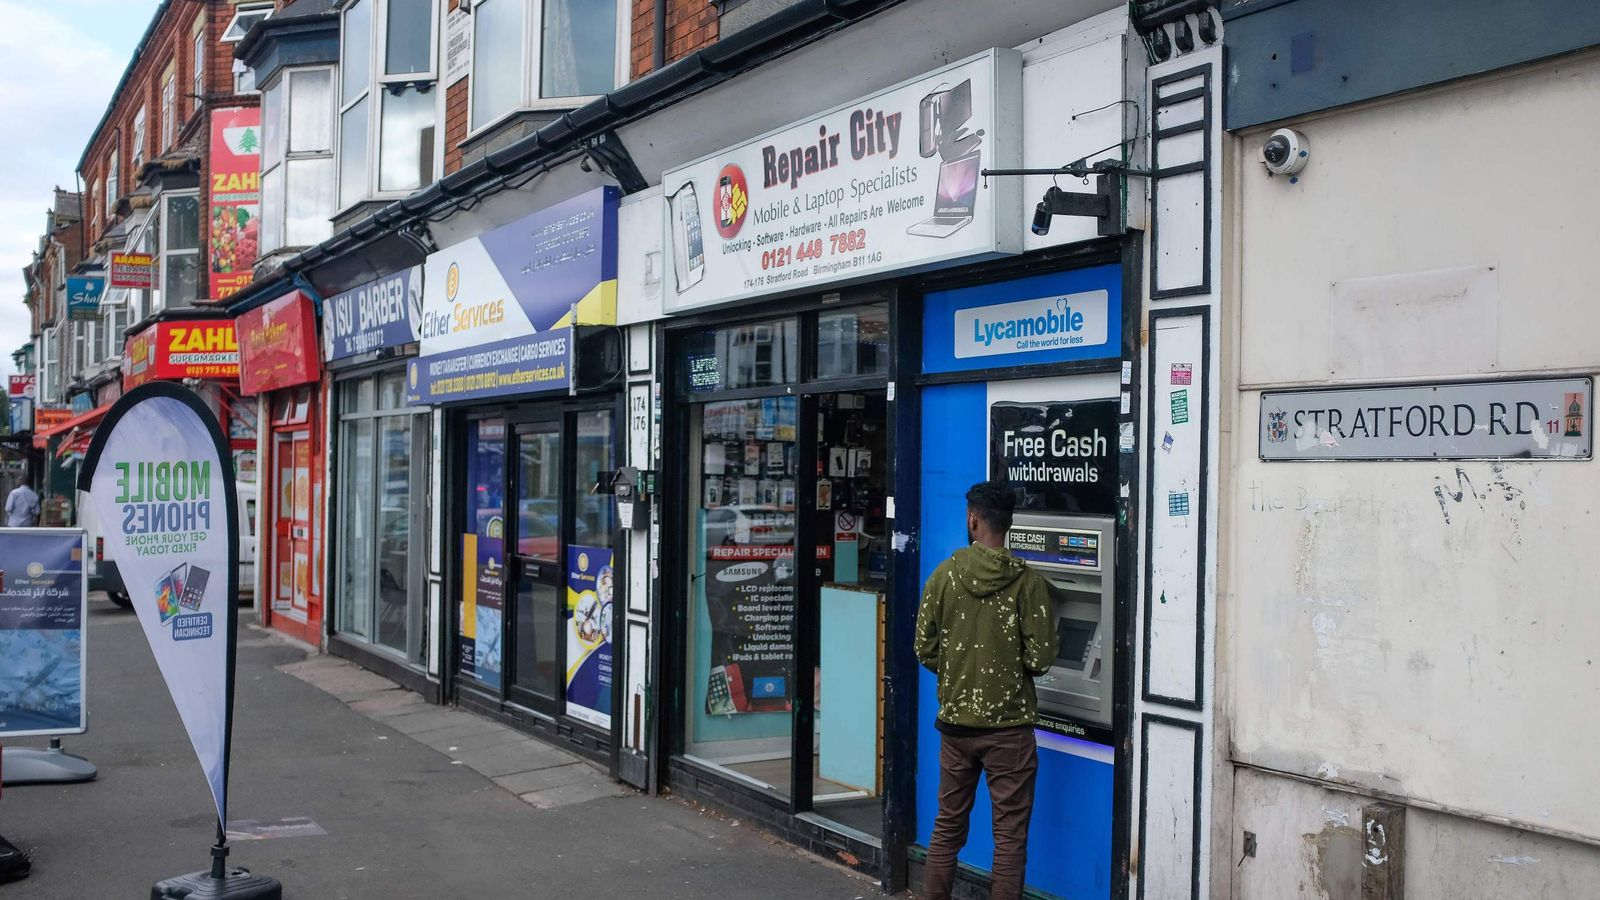 Labour would scrap ATM charges in bid to 'save high streets'